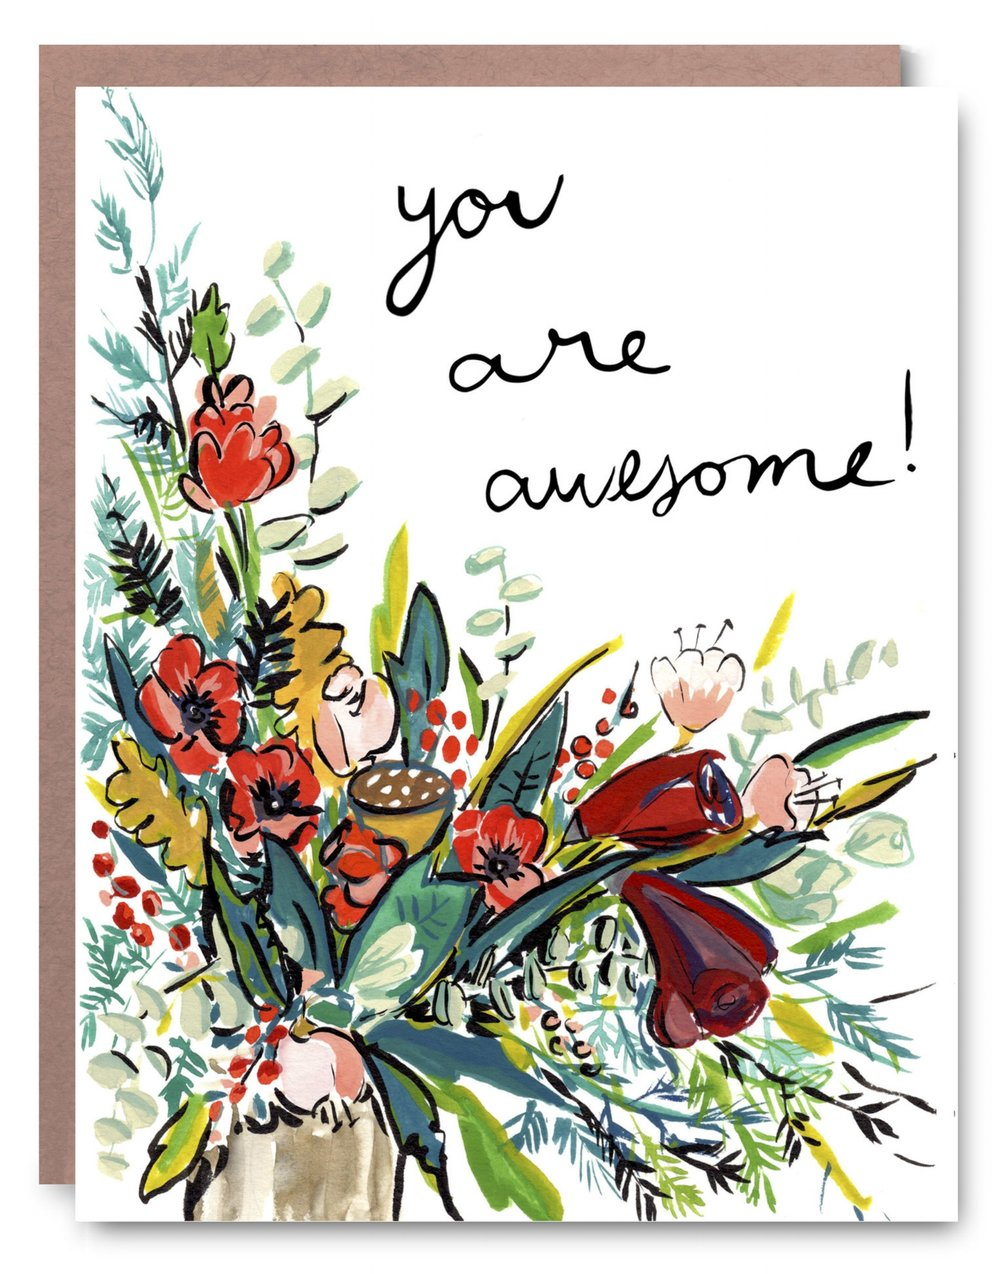 You are Awesome - $5.00